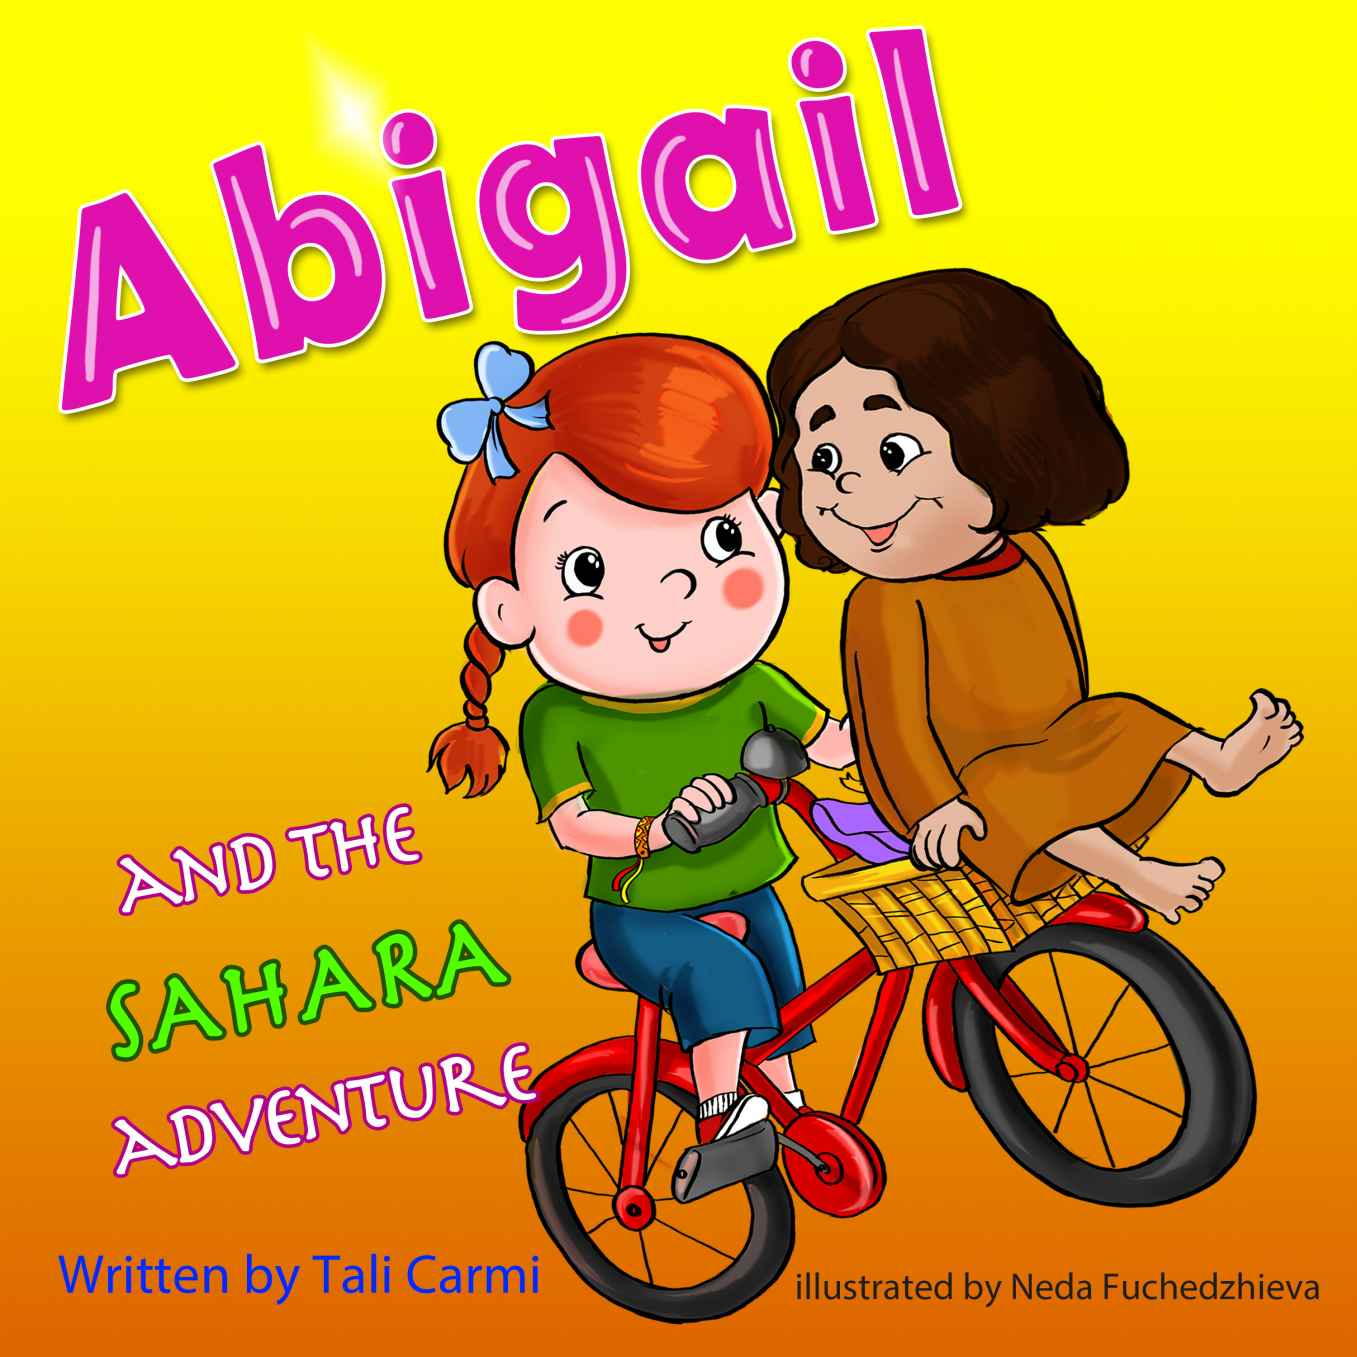 Abigail and the Sahara Adventure